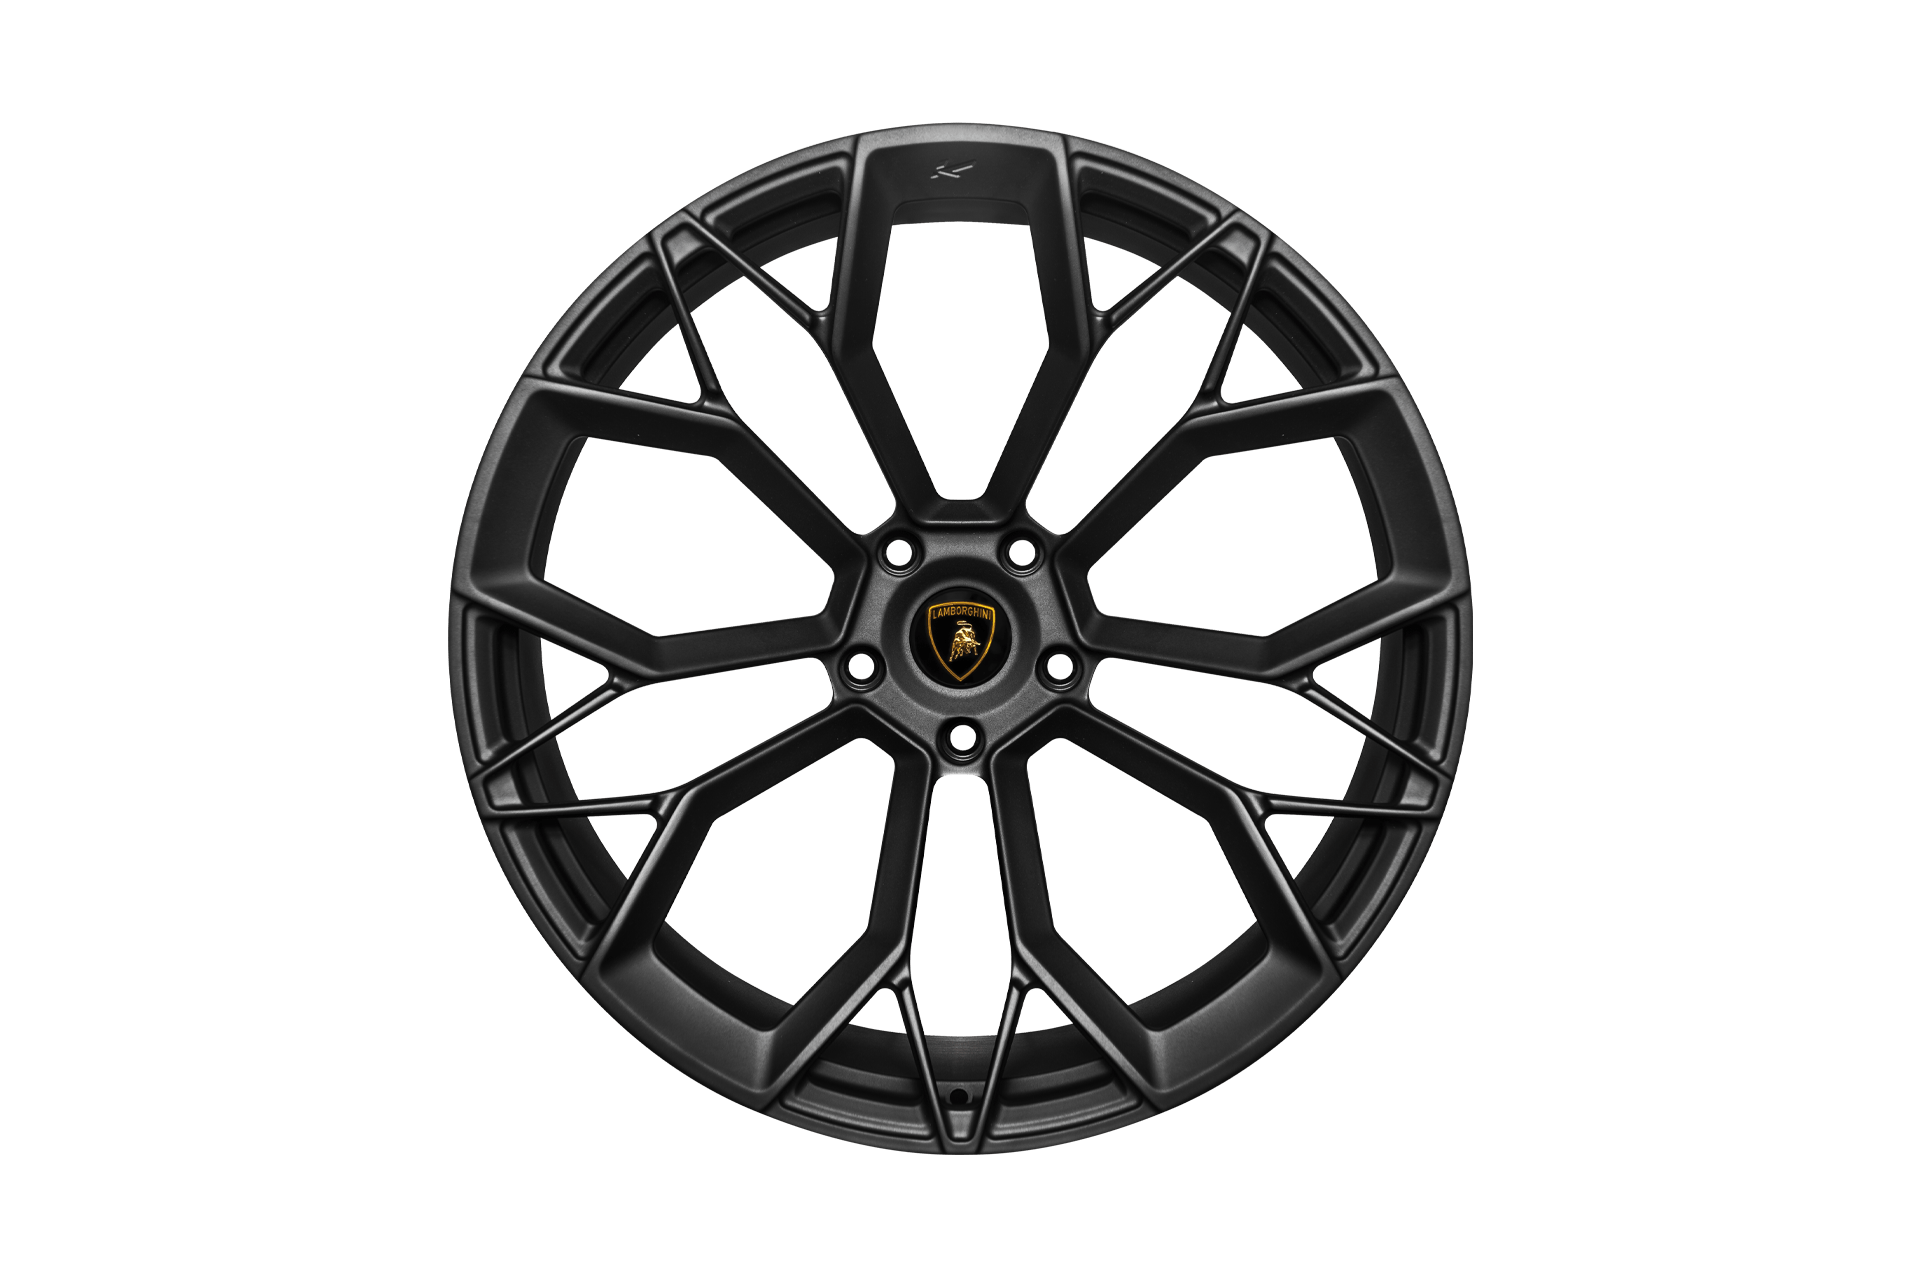 Lamborghini Aventador Type 53 Forged Light Alloy Wheels by Kahn - Image 3147